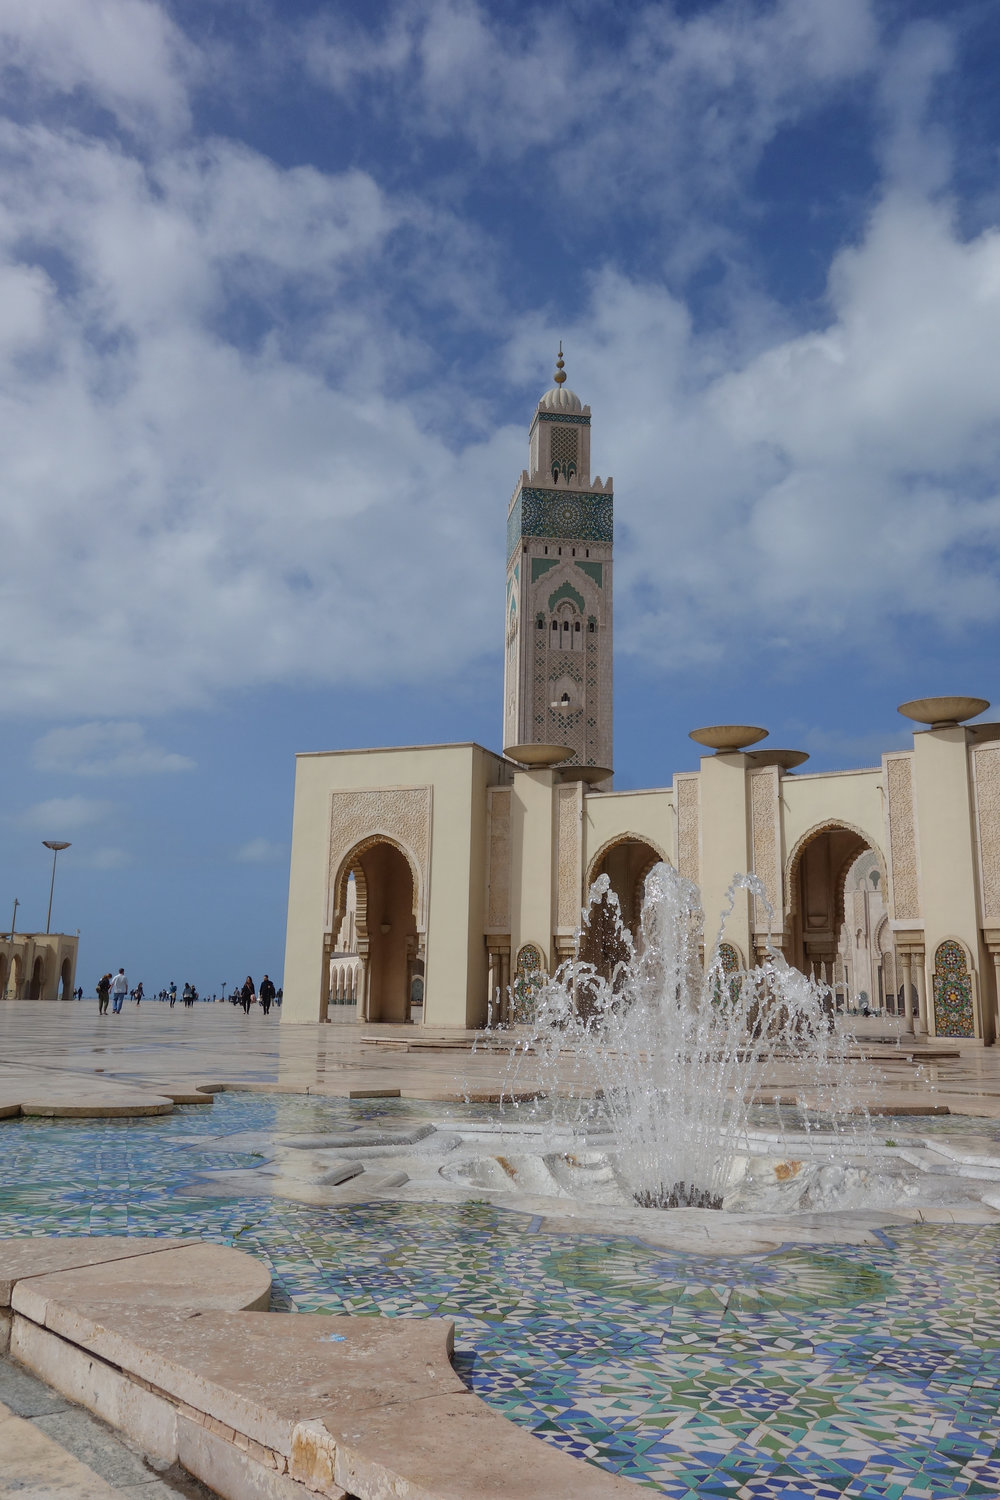 One of Hassan II Mosque's beautiful tile fountains, in Casablanca.